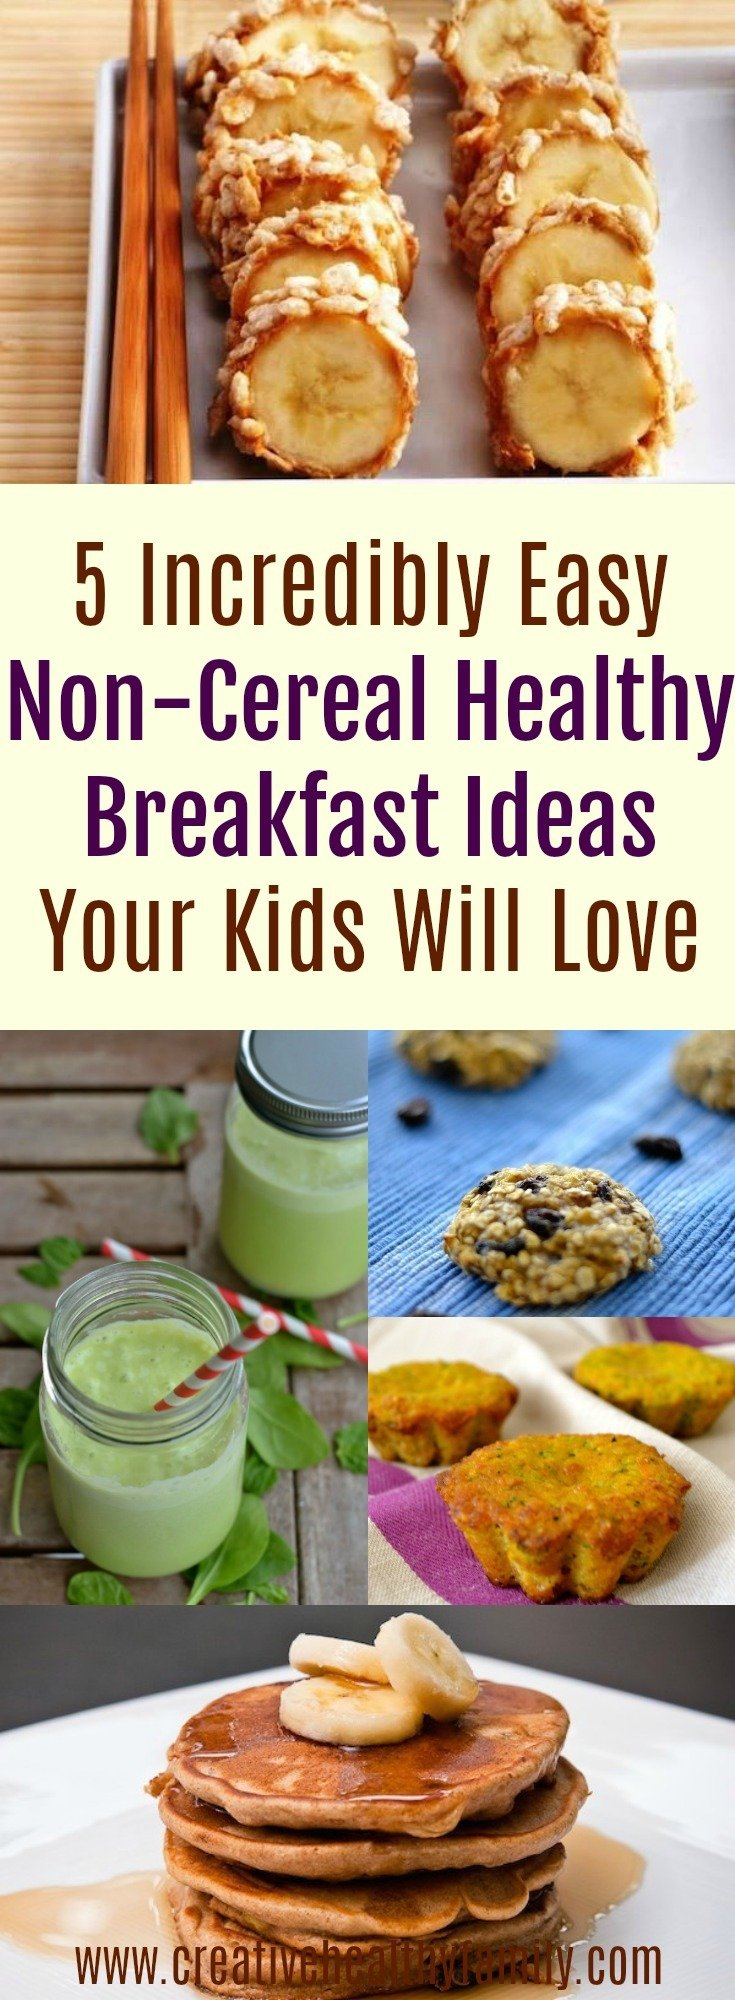 5 incredibly easy non cereal healthy breakfast ideas your kids will love